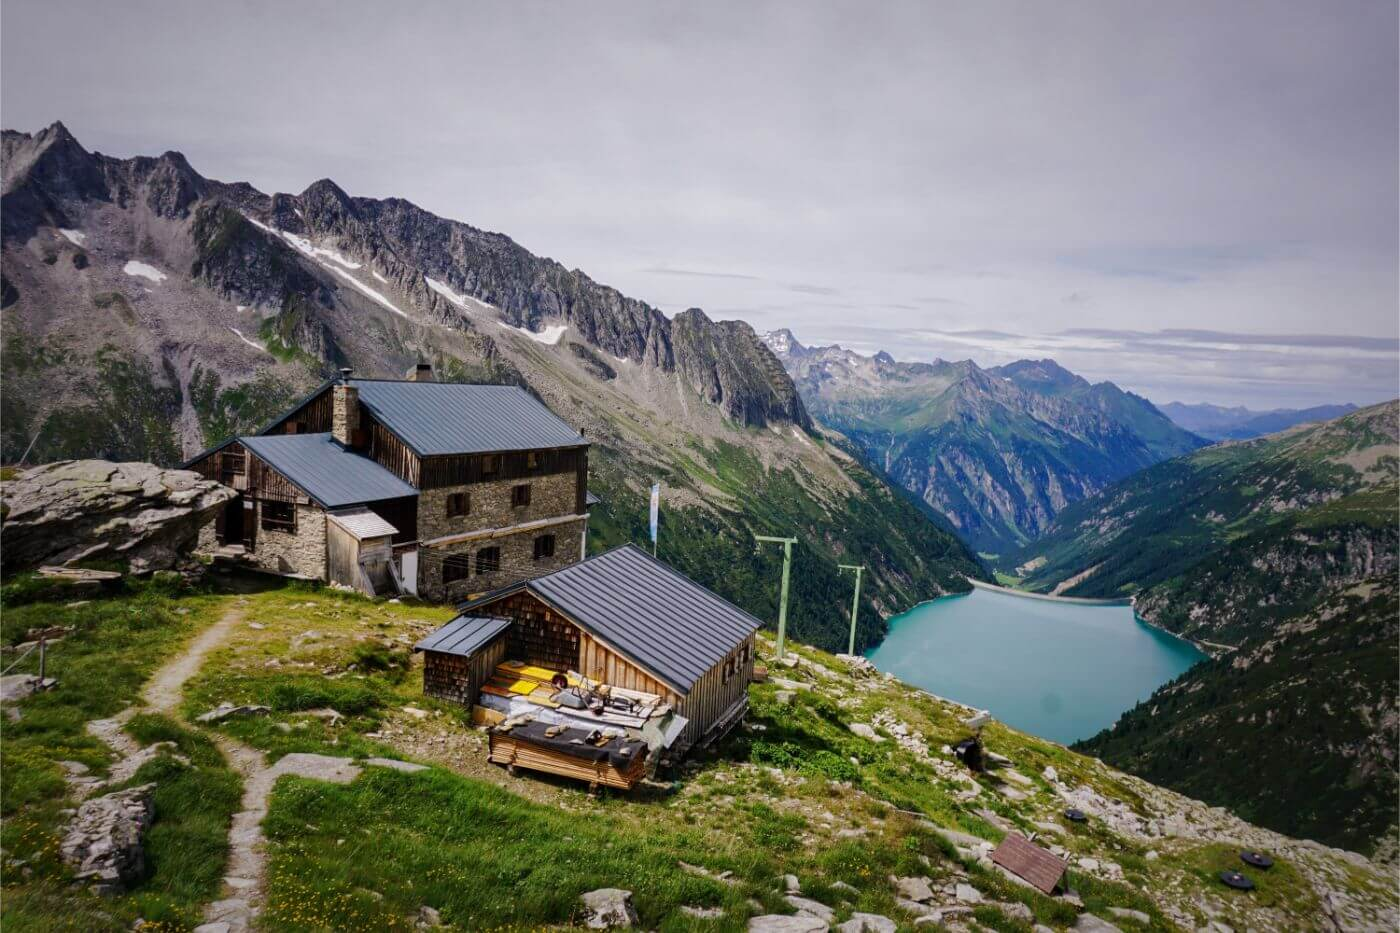 Plauener Mountain Hut Hike, Mayrhofen in Summer, Austria